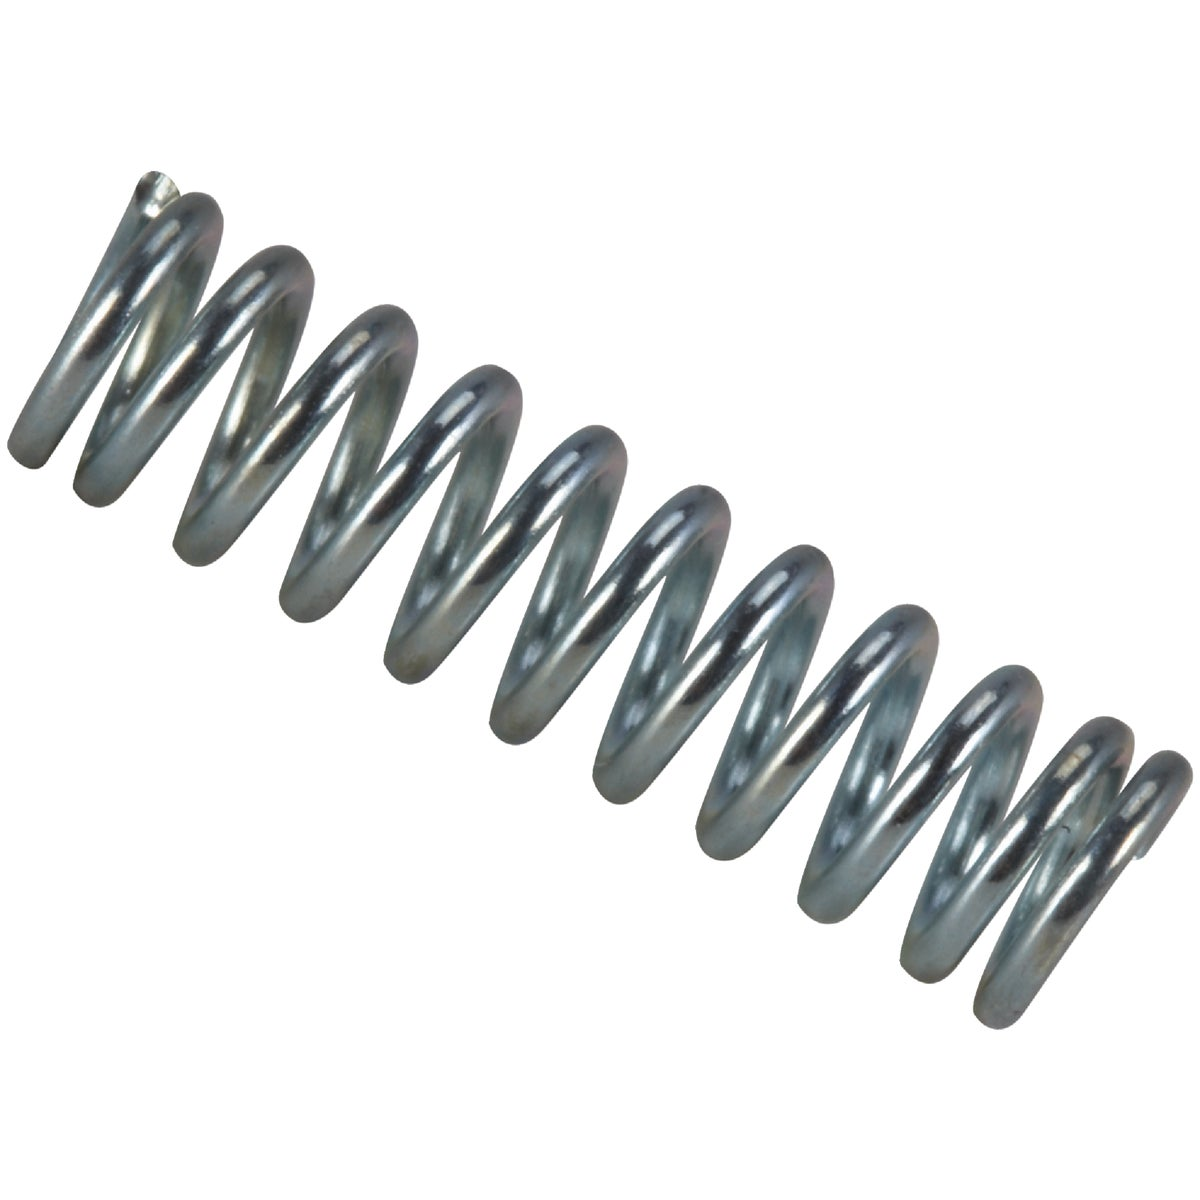 COMPRESSION SPRING - C-608 by Century Spring Corp